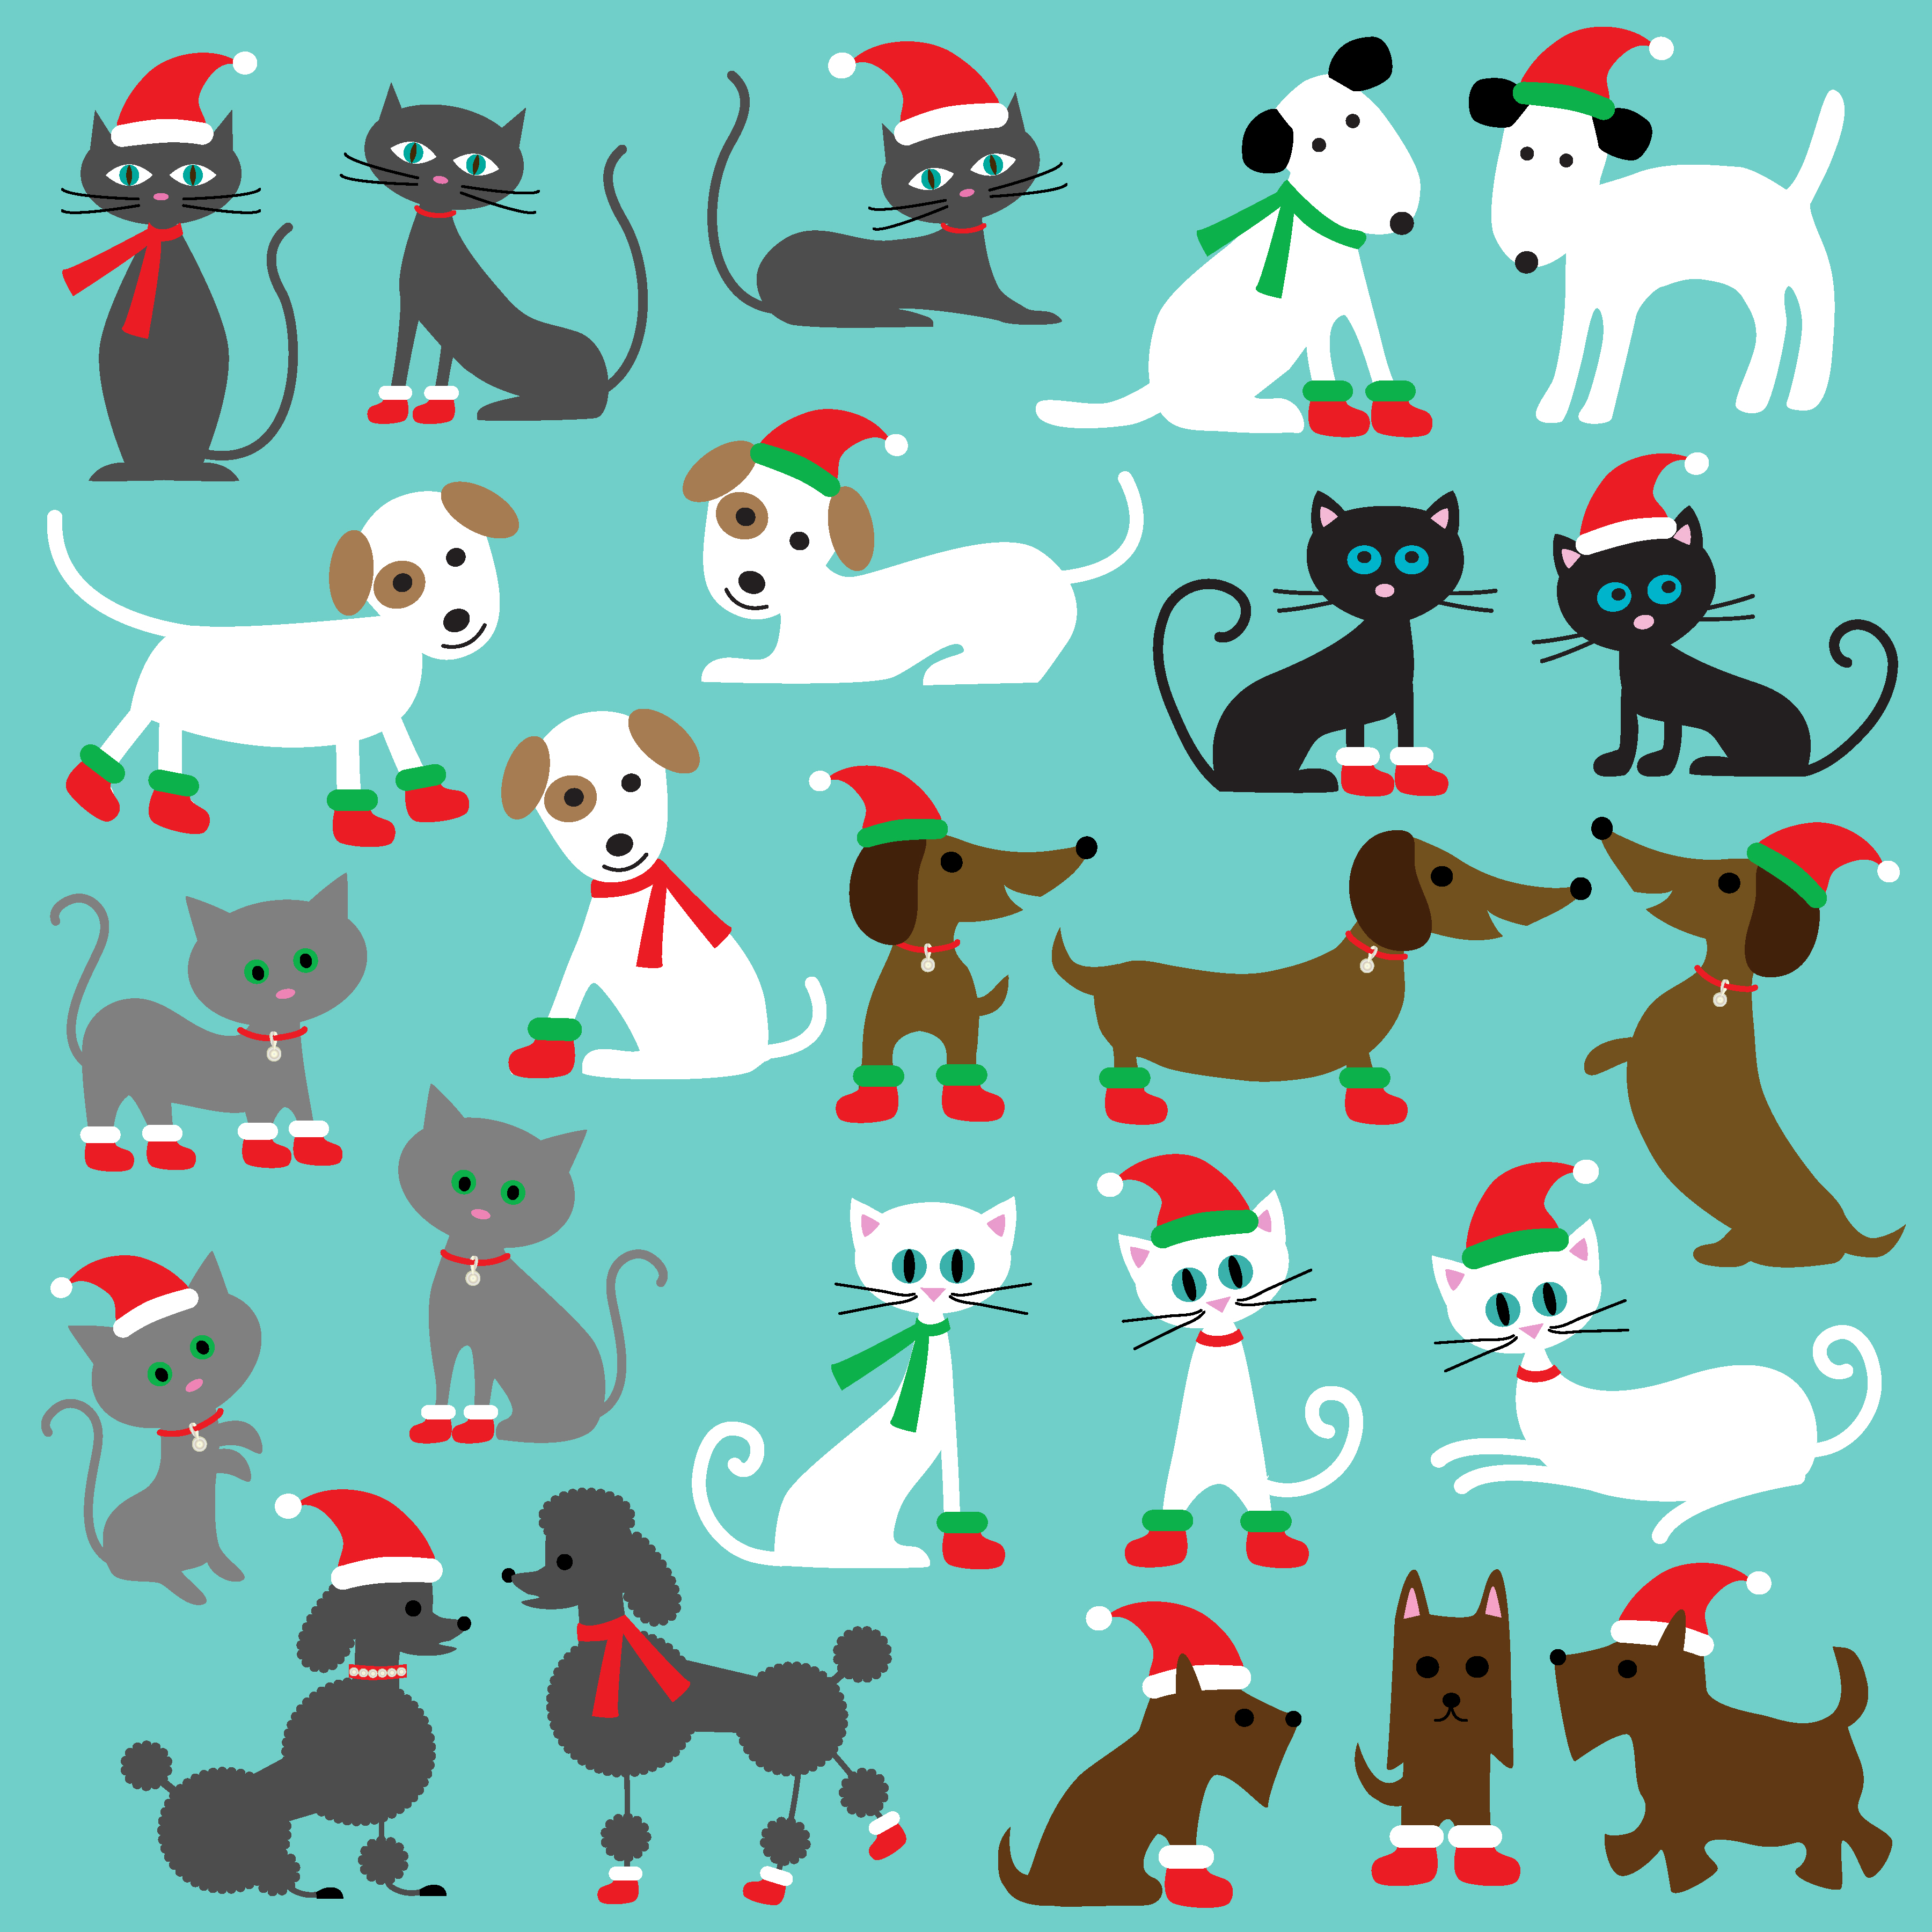 Christmas Cats & Dogs Clipart - Download Free Vectors ...